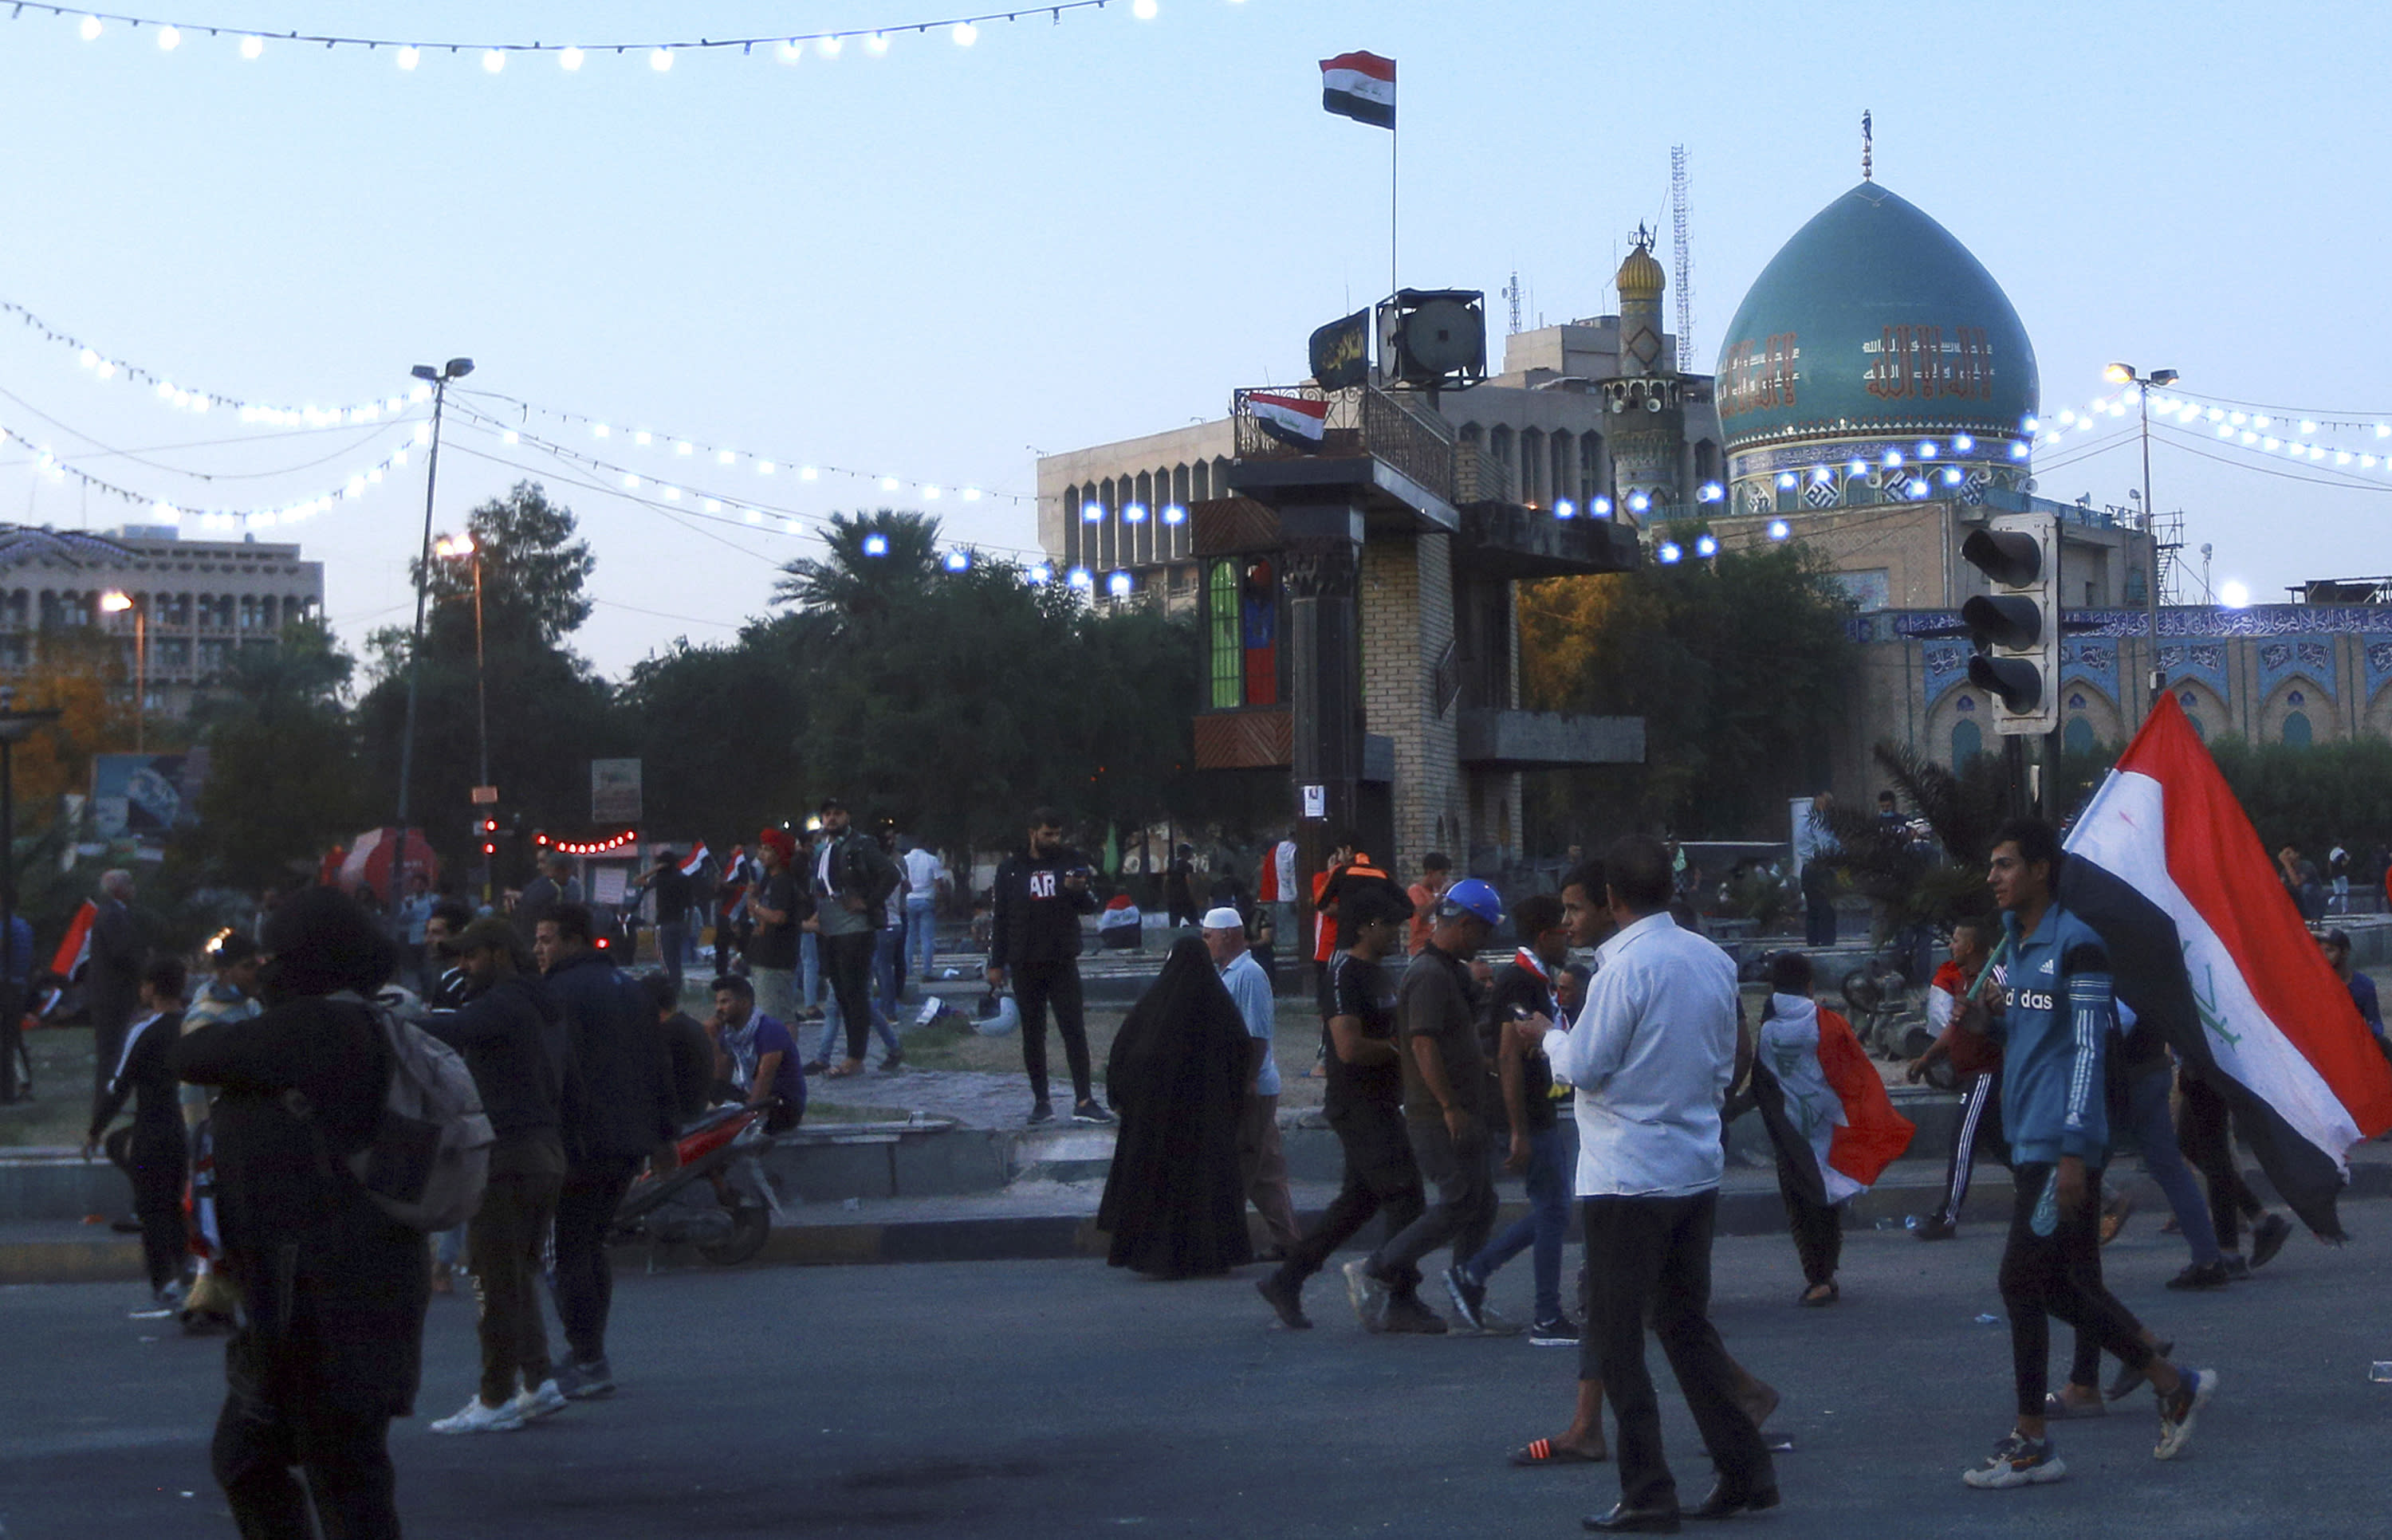 People walk at the Khilani Square after protesters took its control and reopened it after the clashes between Iraqi security forces and anti-government demonstrators in Baghdad, Iraq, Saturday, Nov. 16, 2019. (AP Photo/Hadi Mizban)